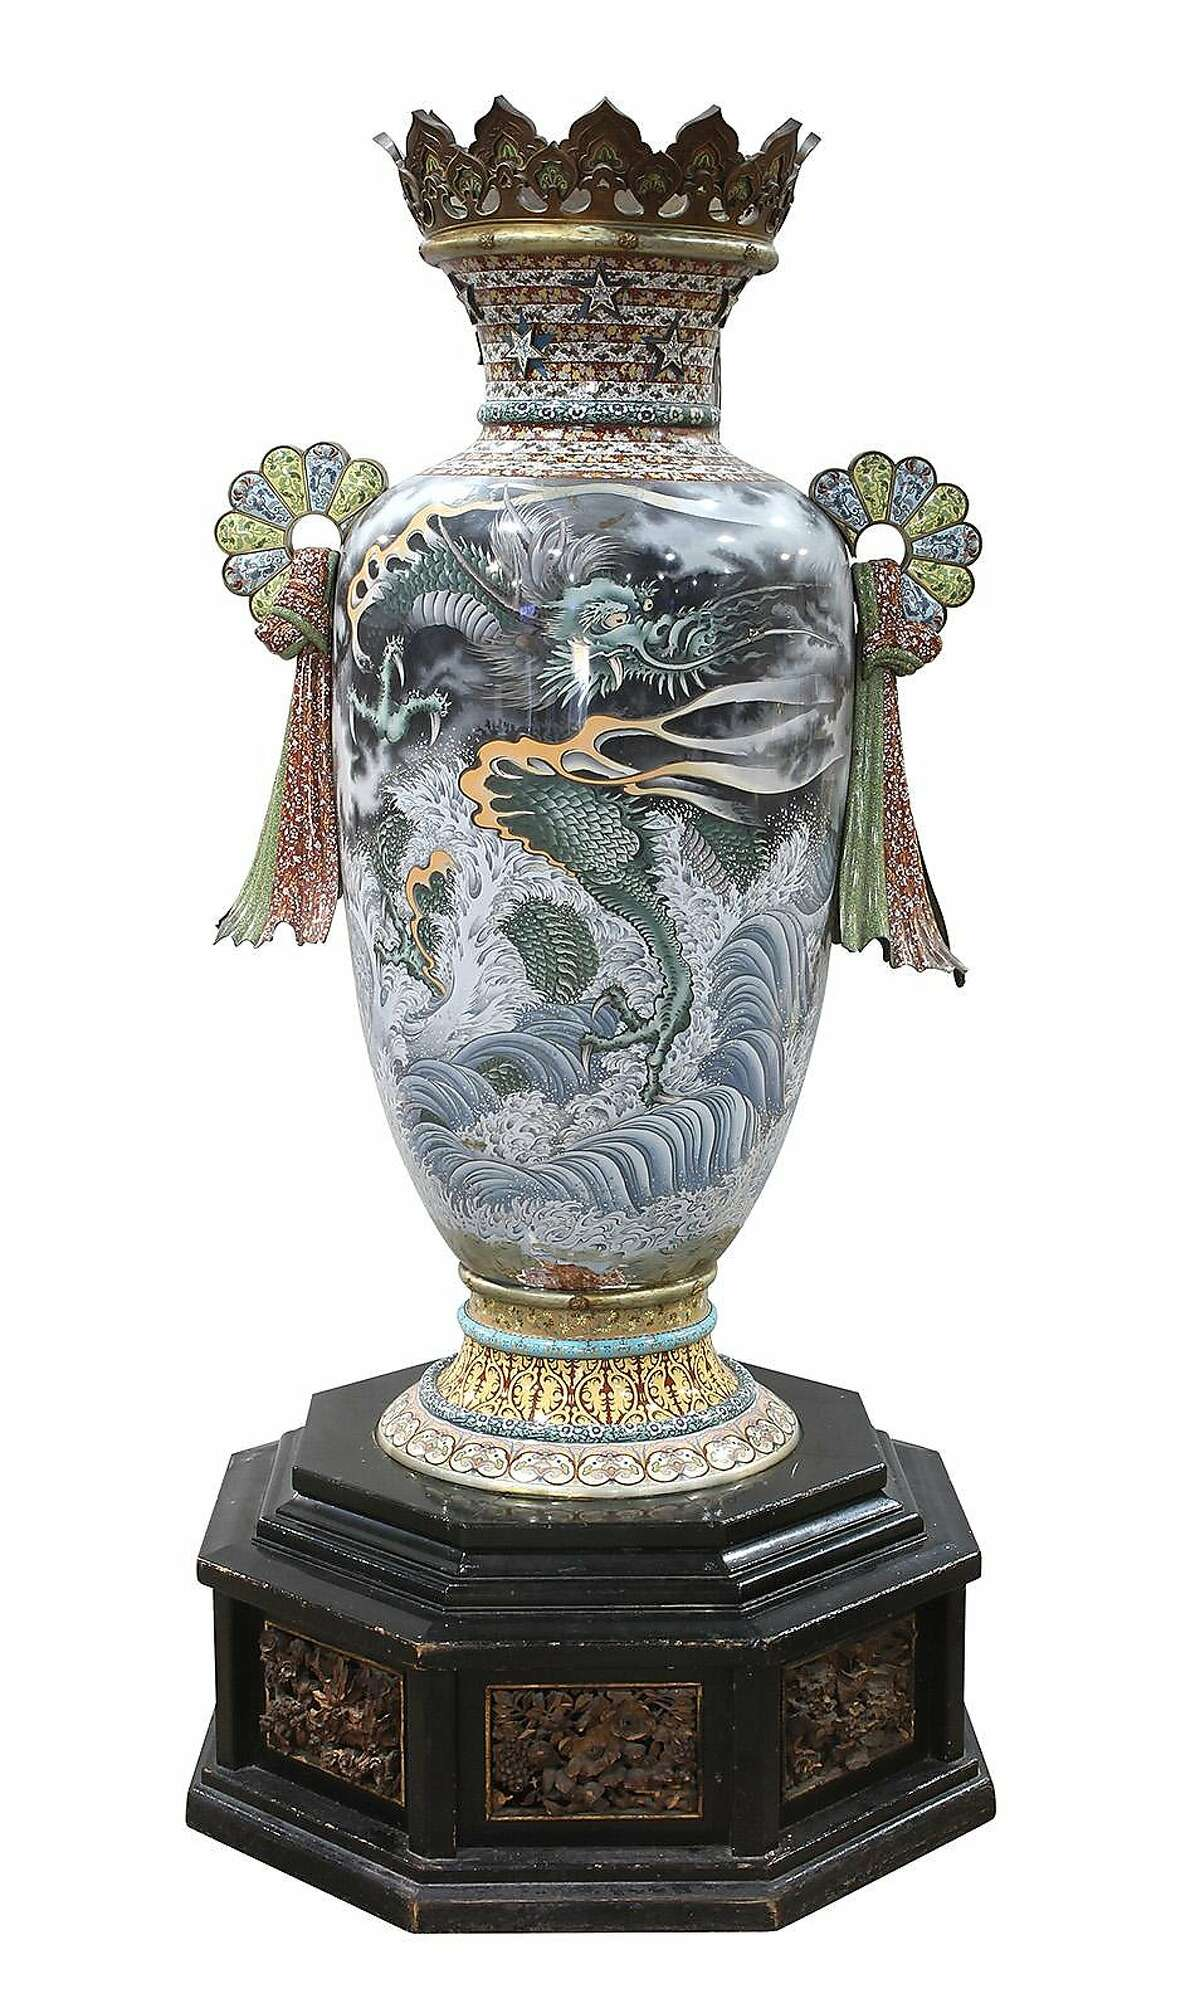 One of three Japanese vases from the 1893 World's Columbian Exposition that is nearly 8 feet tall is set to be auctioned in February. (Clars Auction Gallery)